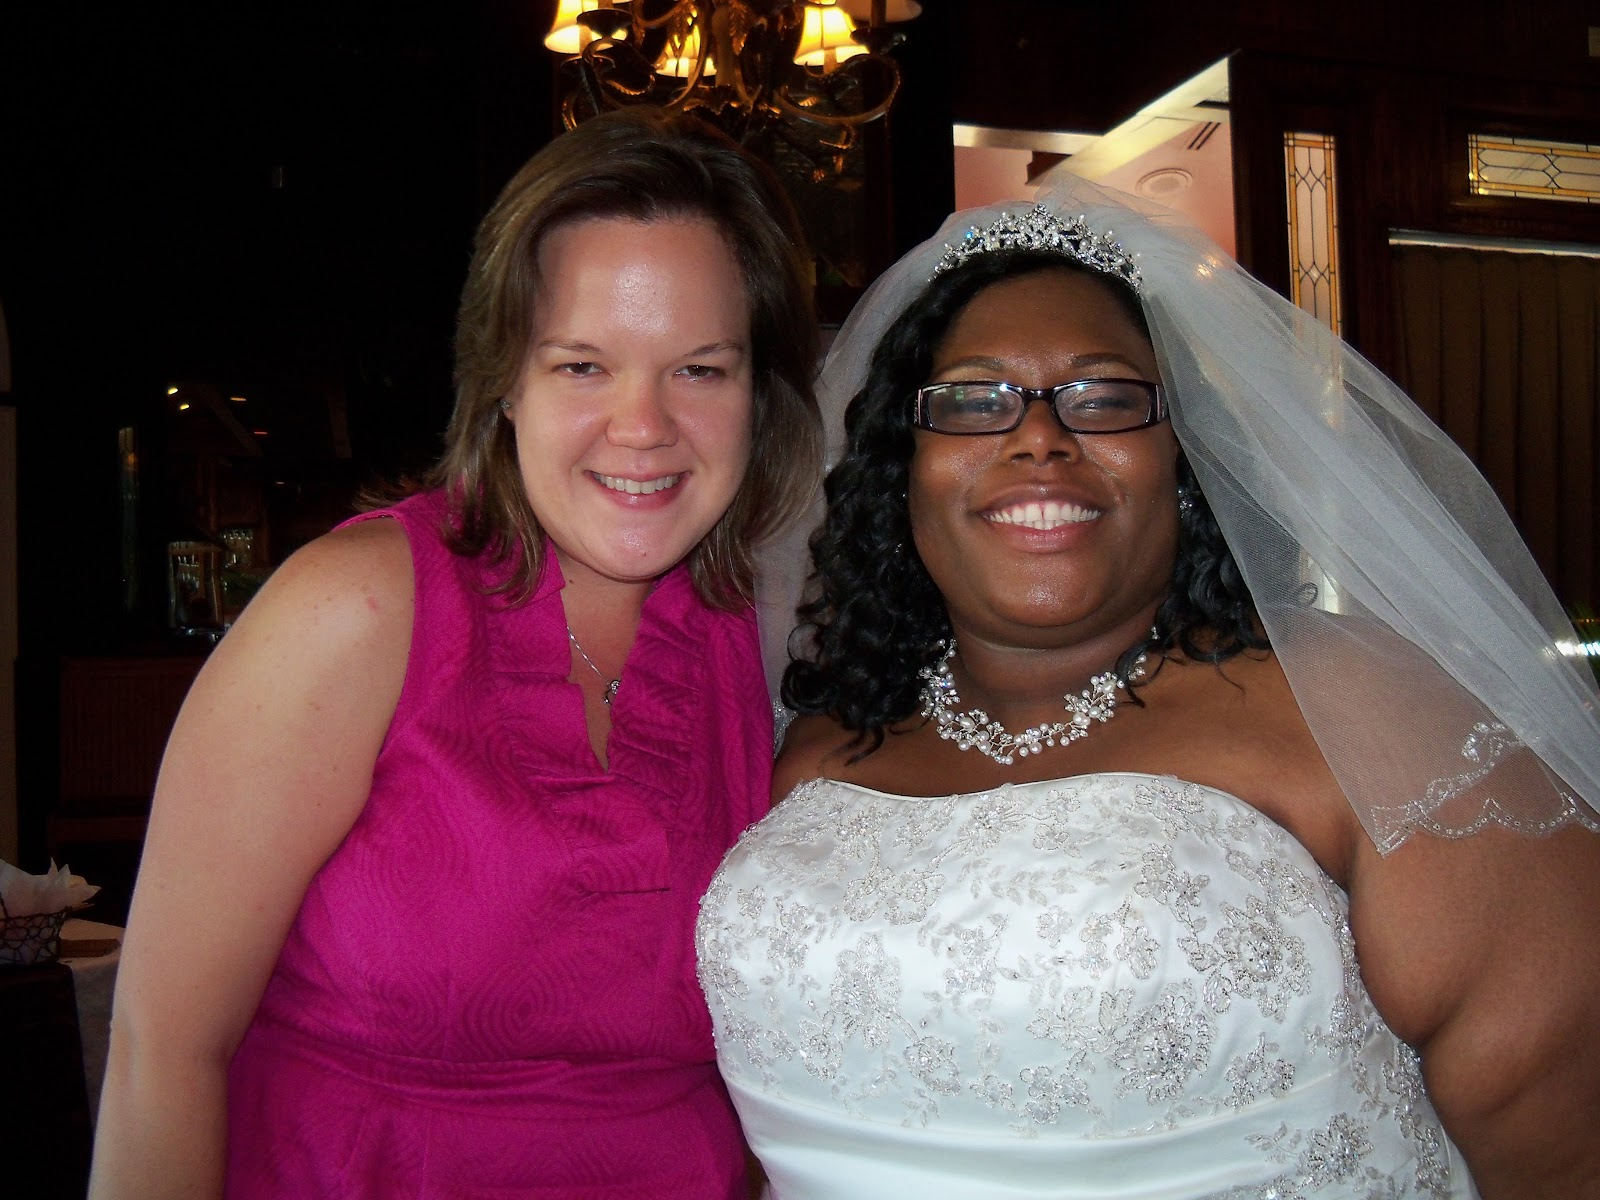 MeChaia Lunn and Clyde Longs wedding - 101_4661.JPG